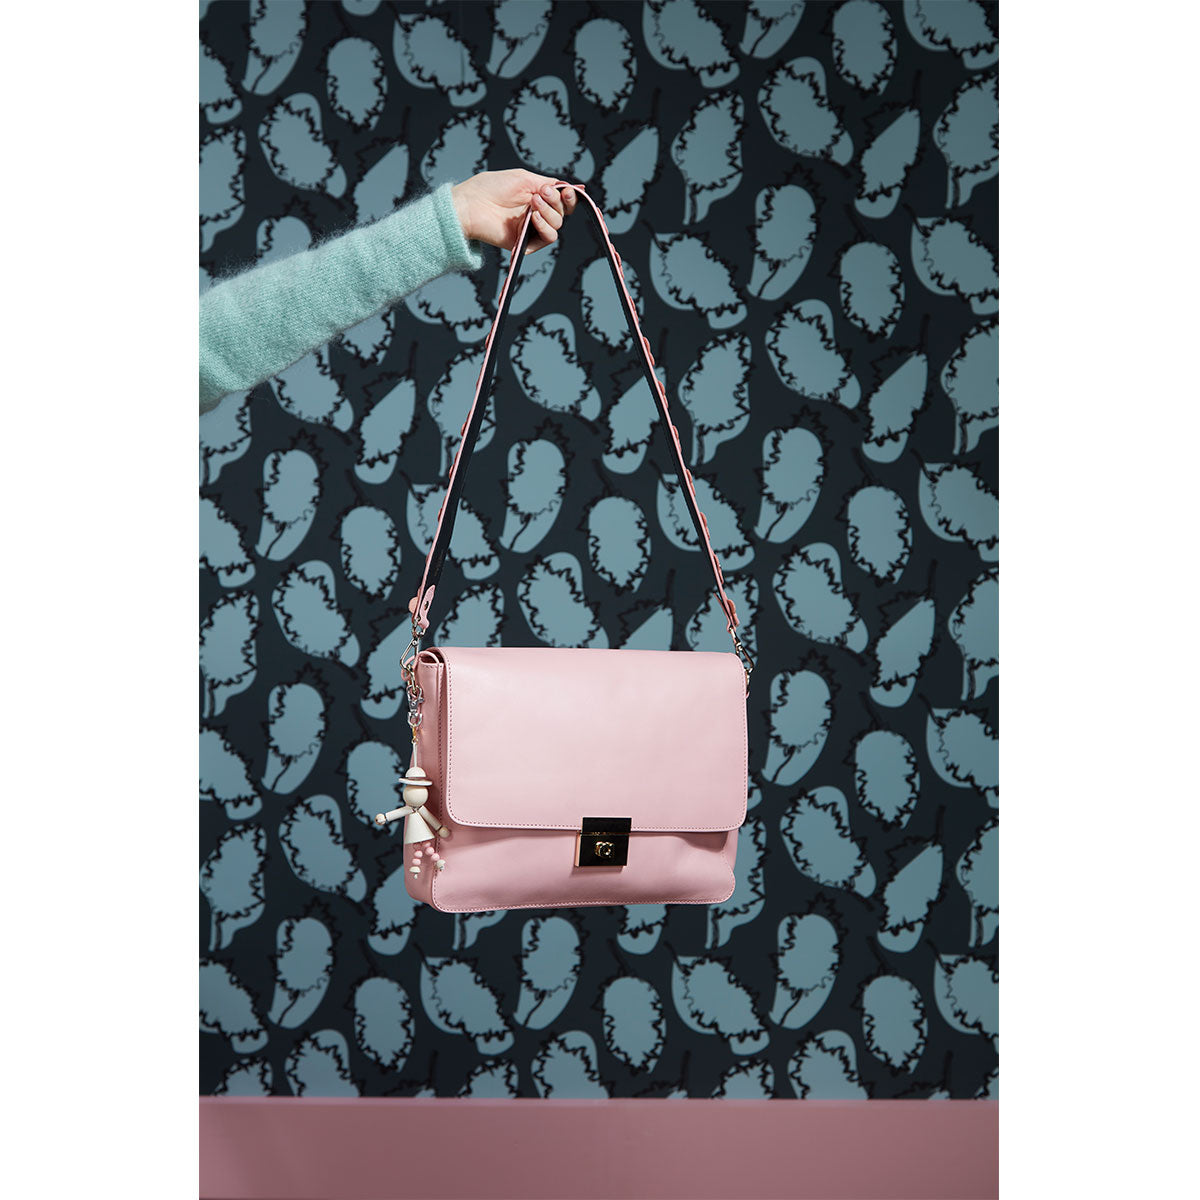 Milja flower shoulder strap pink/black